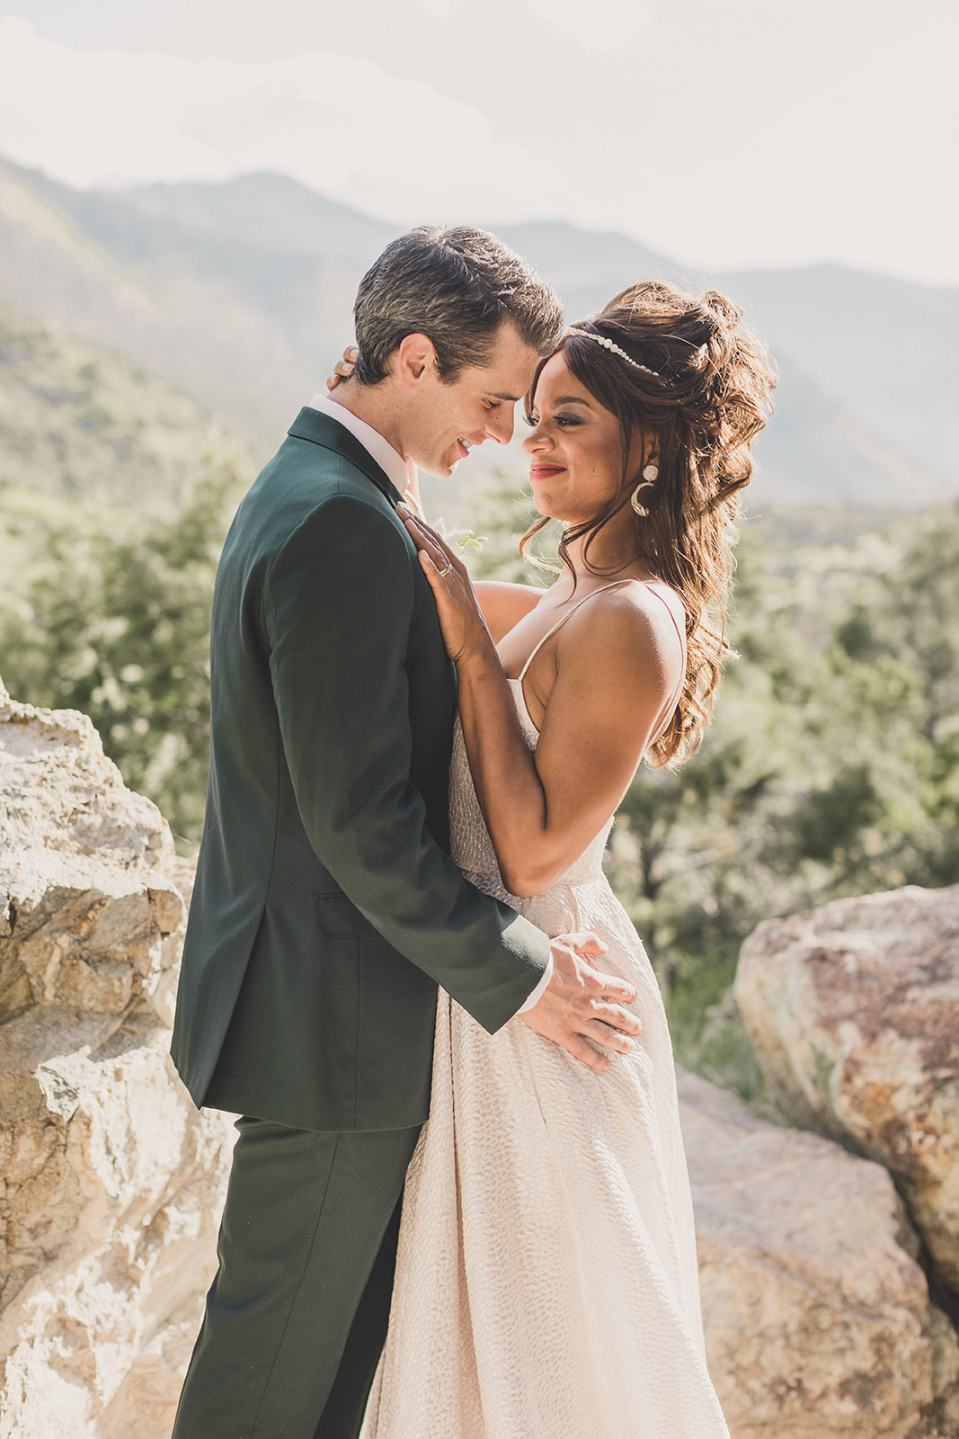 romantic wedding portraits in mountains of Mt Charleston photographed by Taylor Made Photography